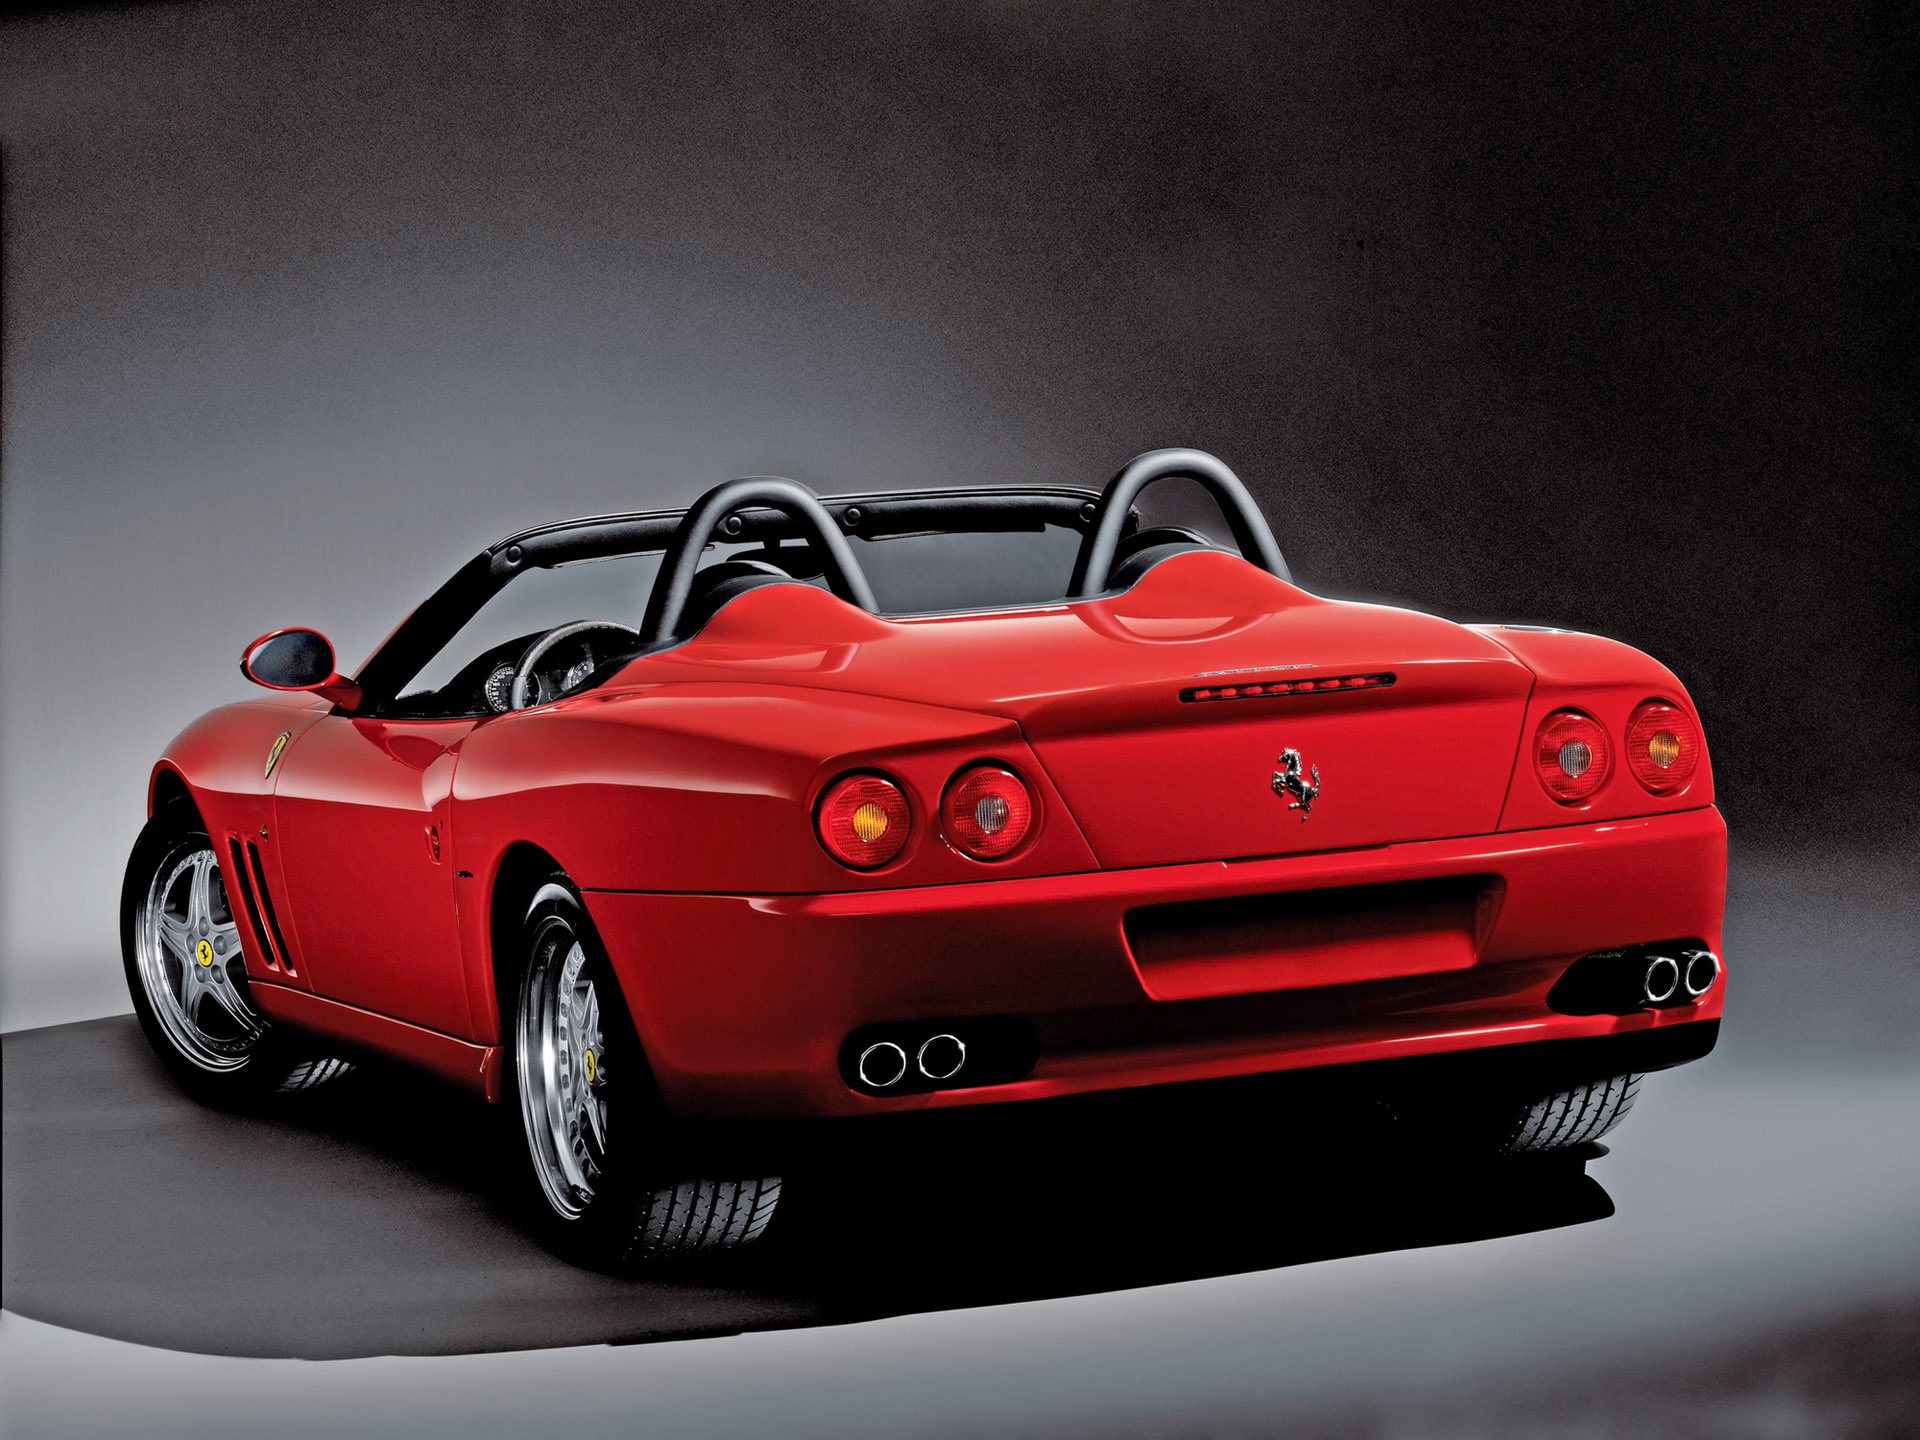 2019 Ferrari 550 Barchetta Pininfarina photo - 4